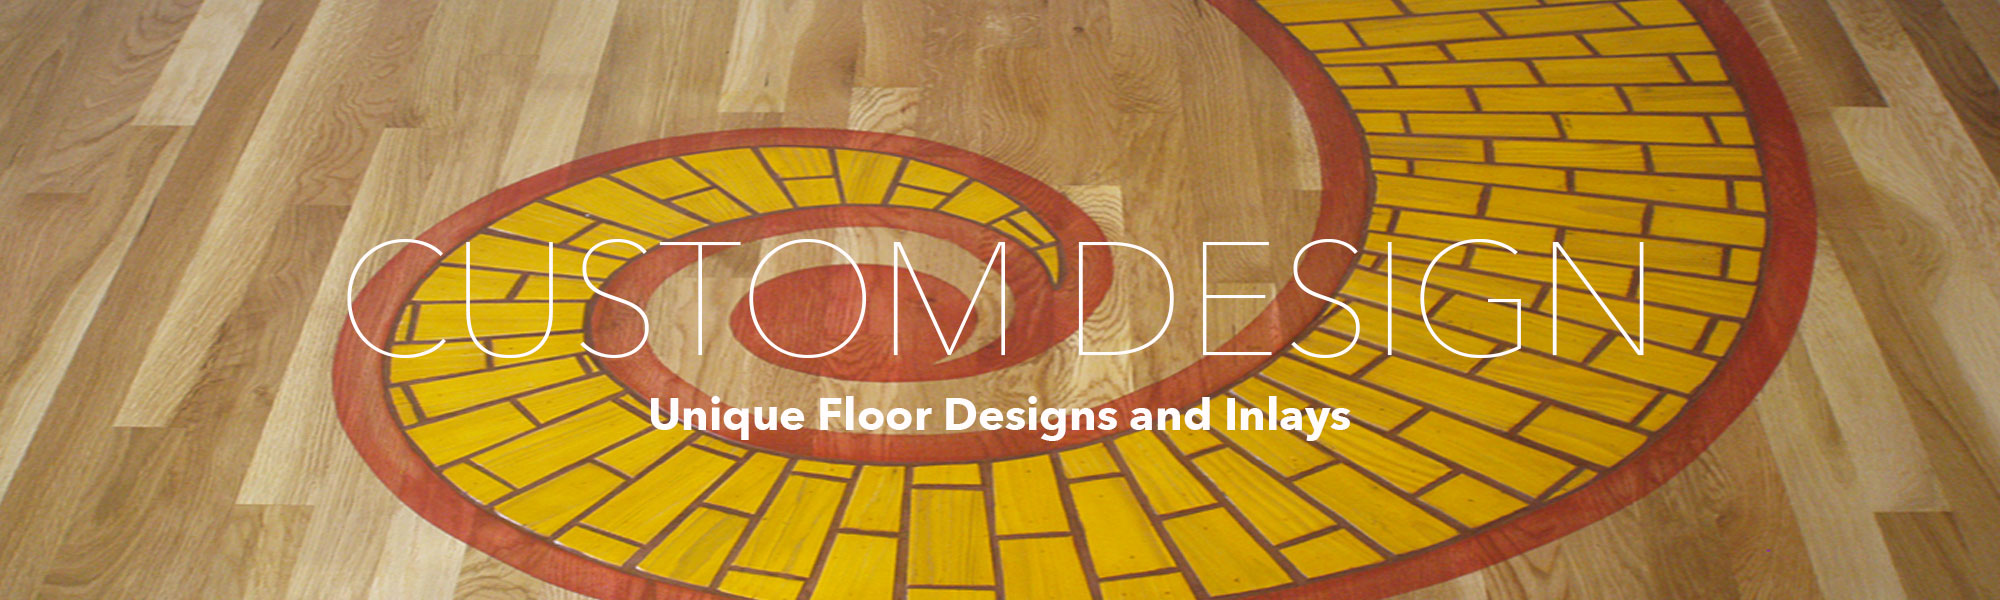 Unique Custom Flooring Designs, Inlays